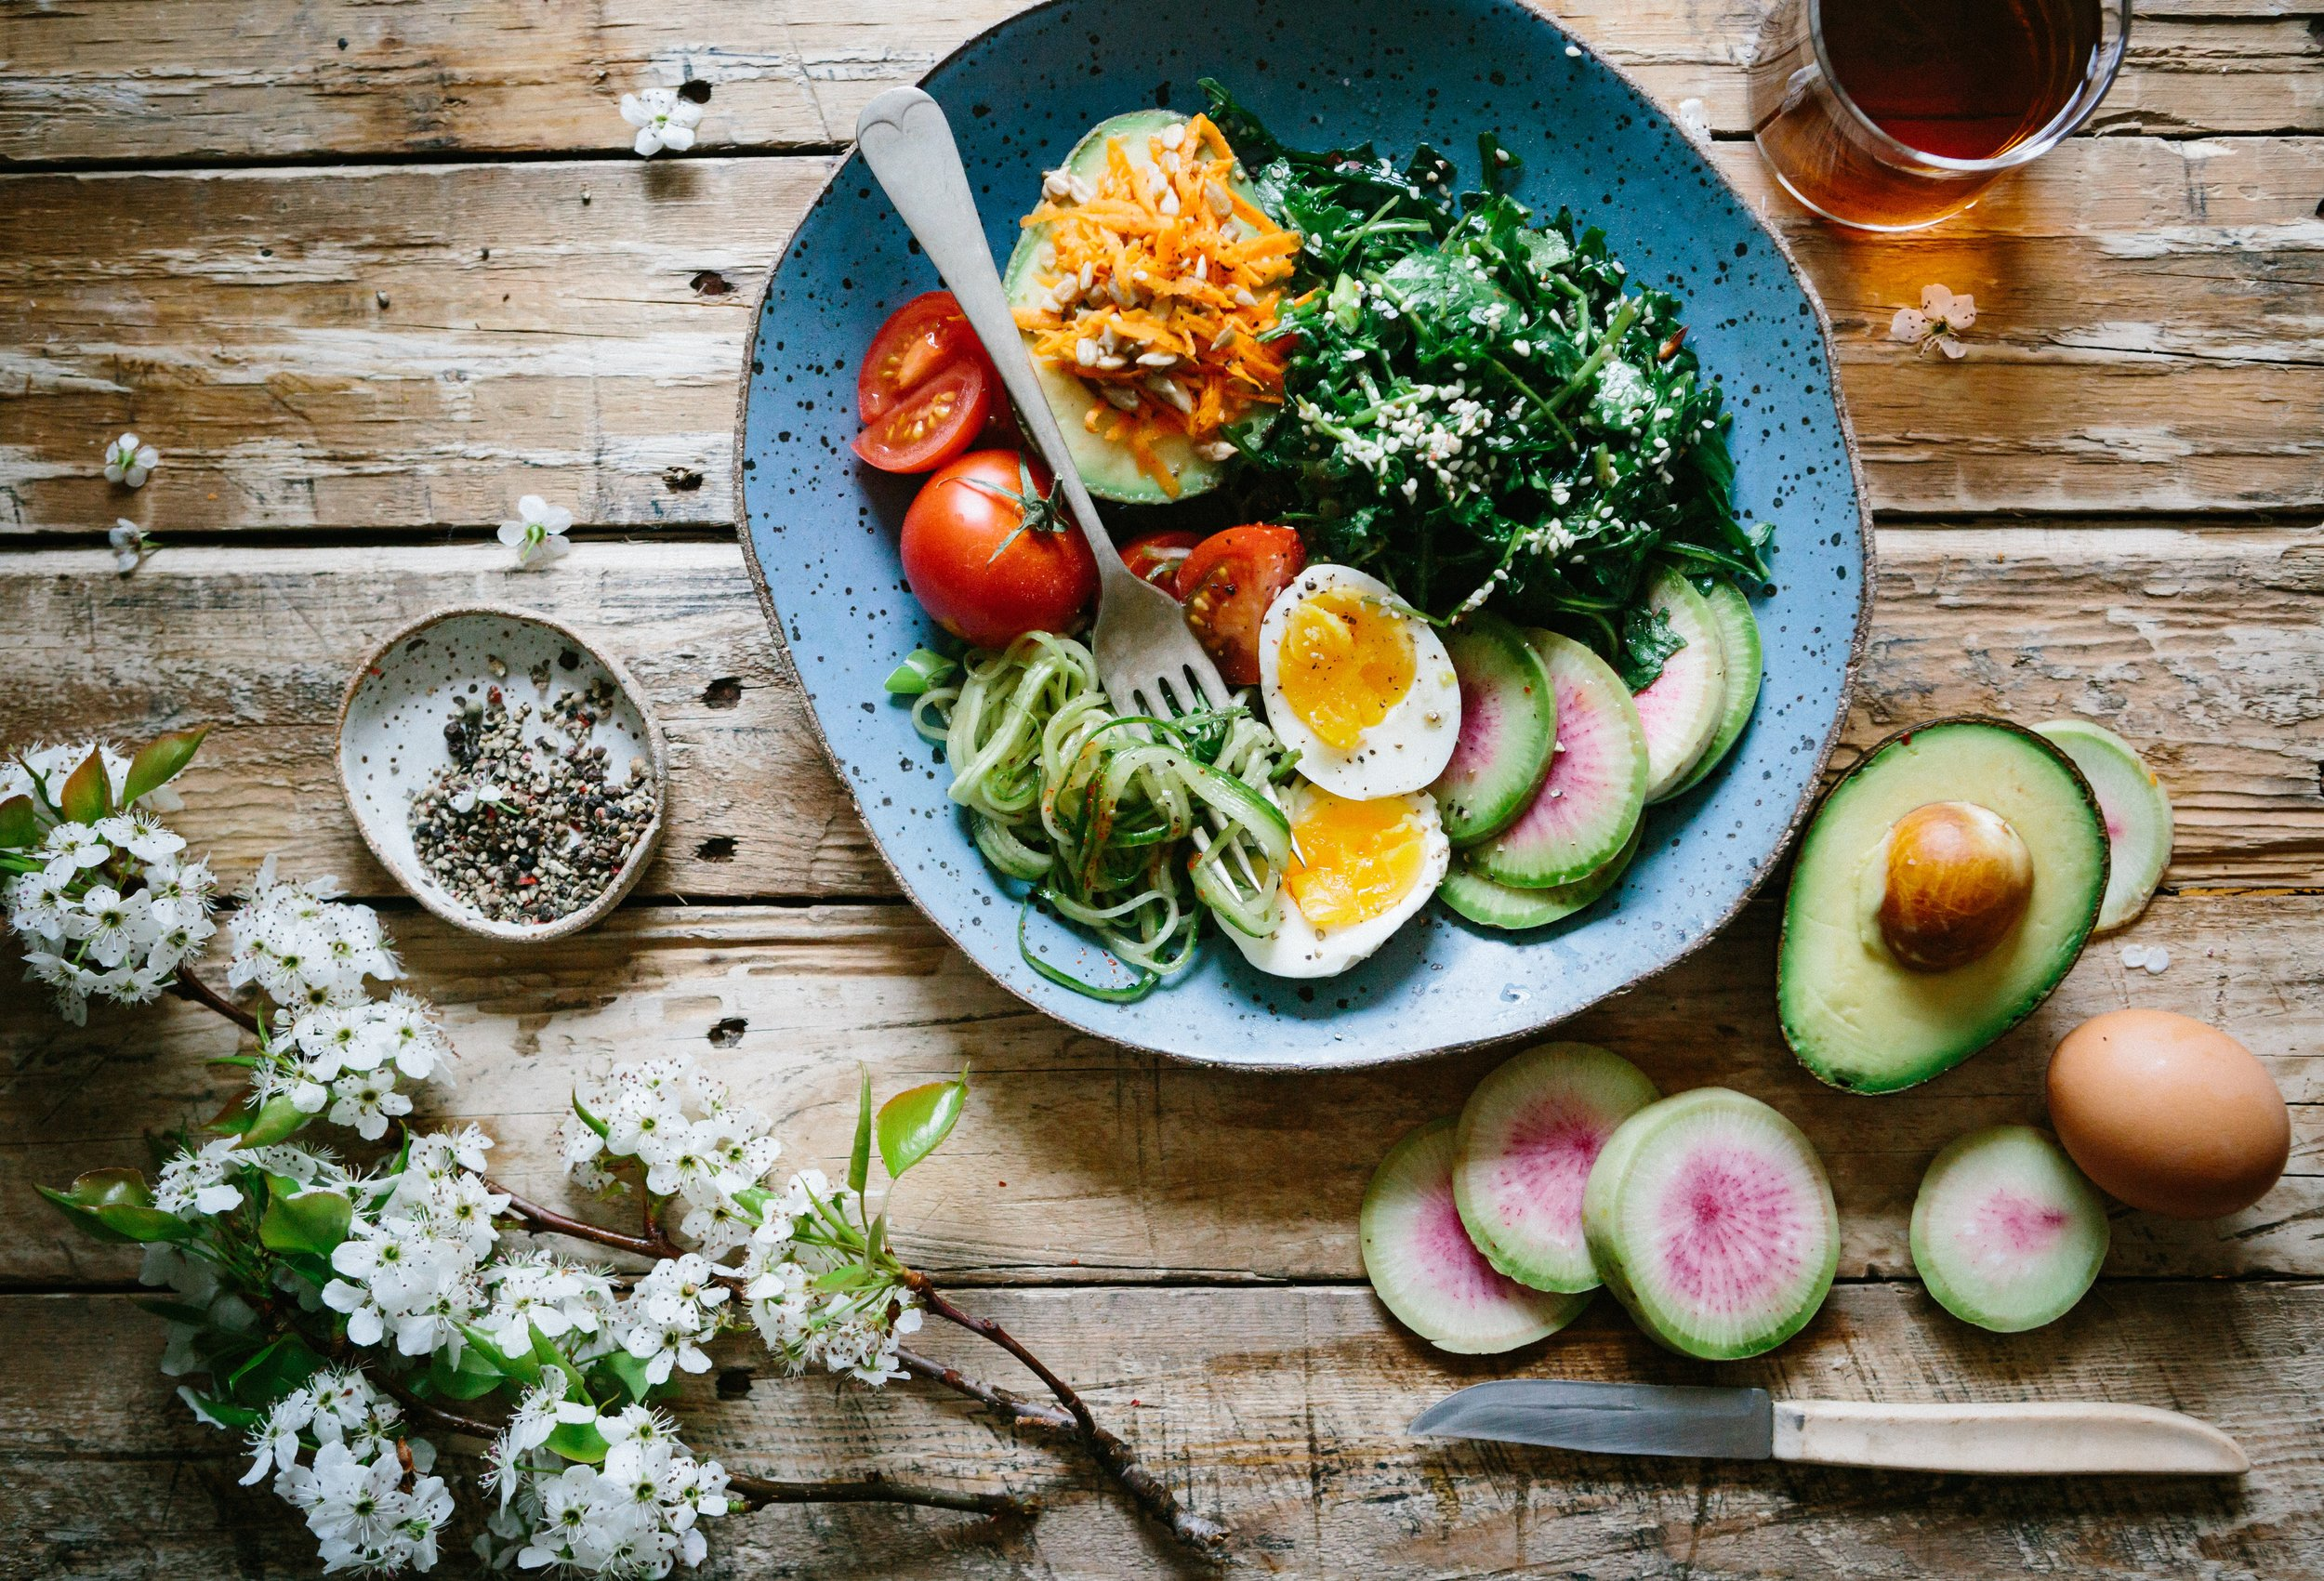 Eat food as close to nature as possible -